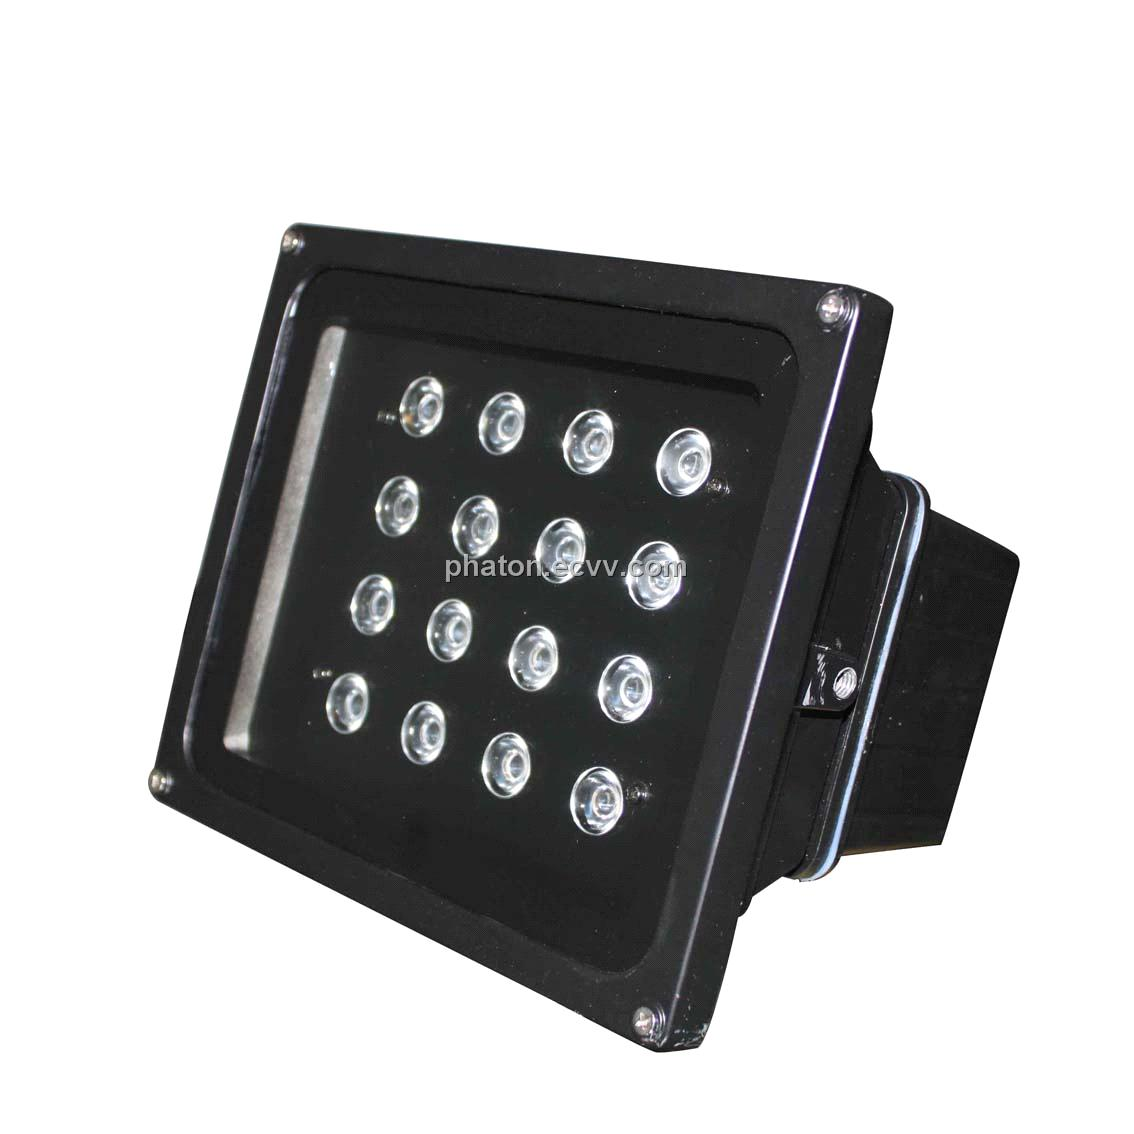 Dmx rgb led outdoor flood light purchasing souring agent ecvv dmx rgb led outdoor flood light workwithnaturefo